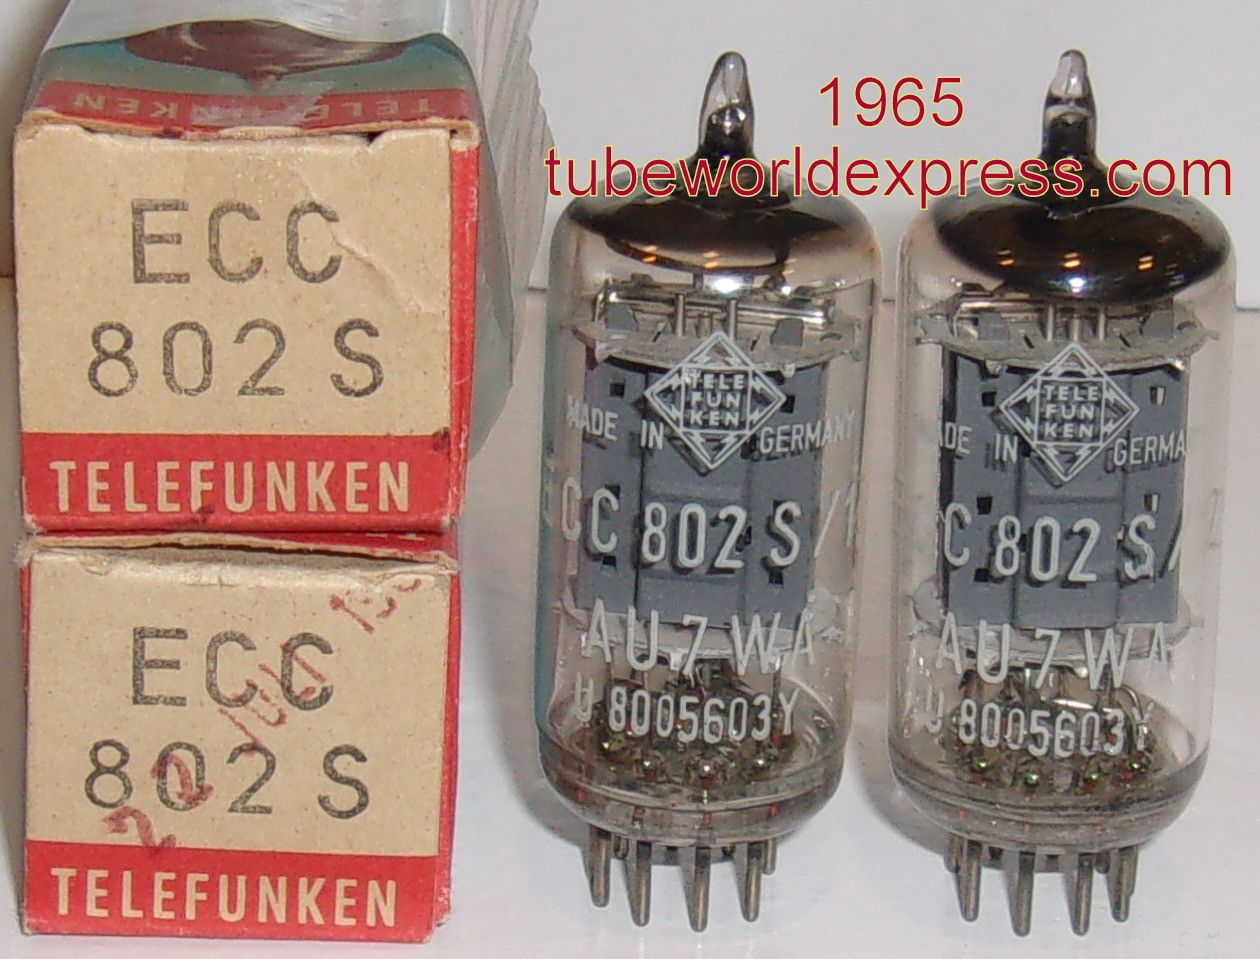 1 12au7 Pair Ecc802s 12au7 Telefunken Germany Lt Gt Bottom Mason Jar Wine Glass Wine Glass Pairs